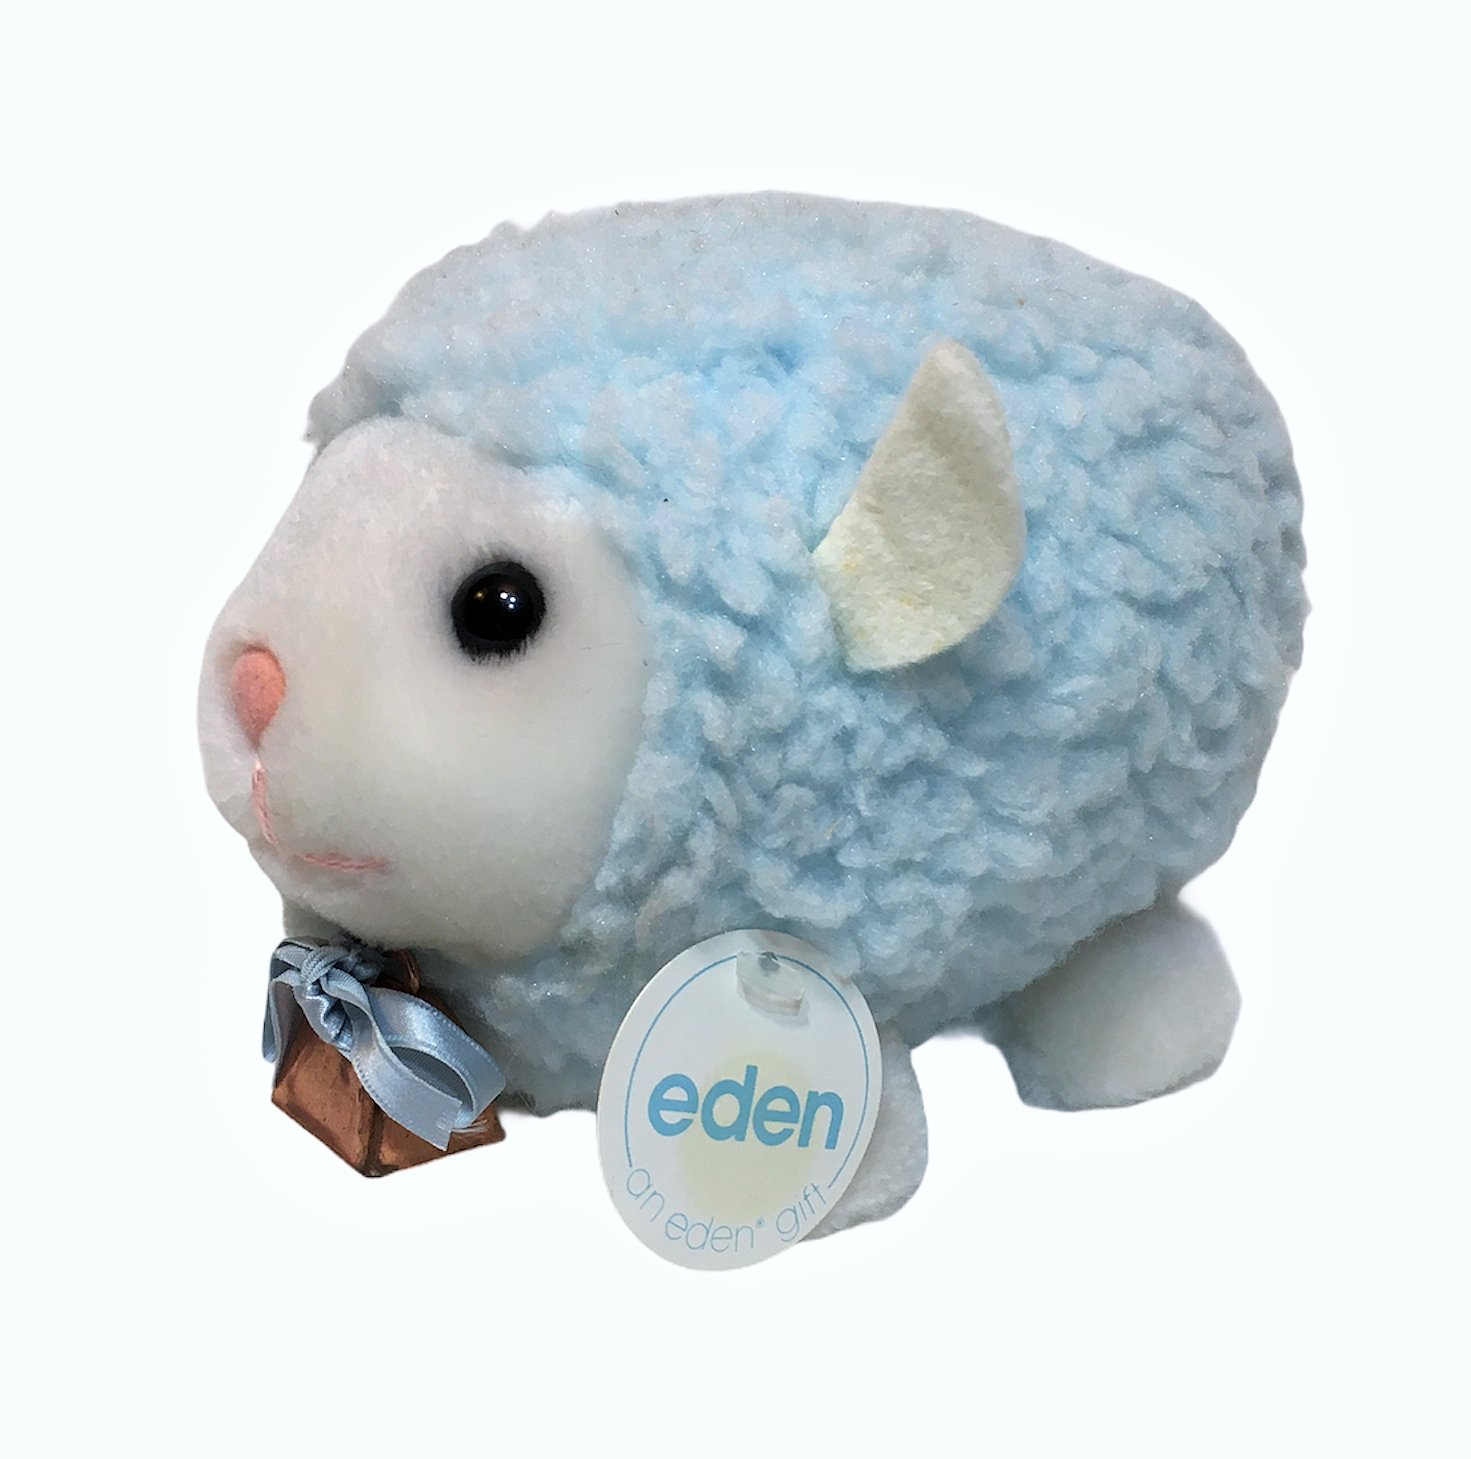 Eden Toys Lamb Sheep Blue Plush Stuffed Animal Vintage Bell Baby Toy Bow 7""